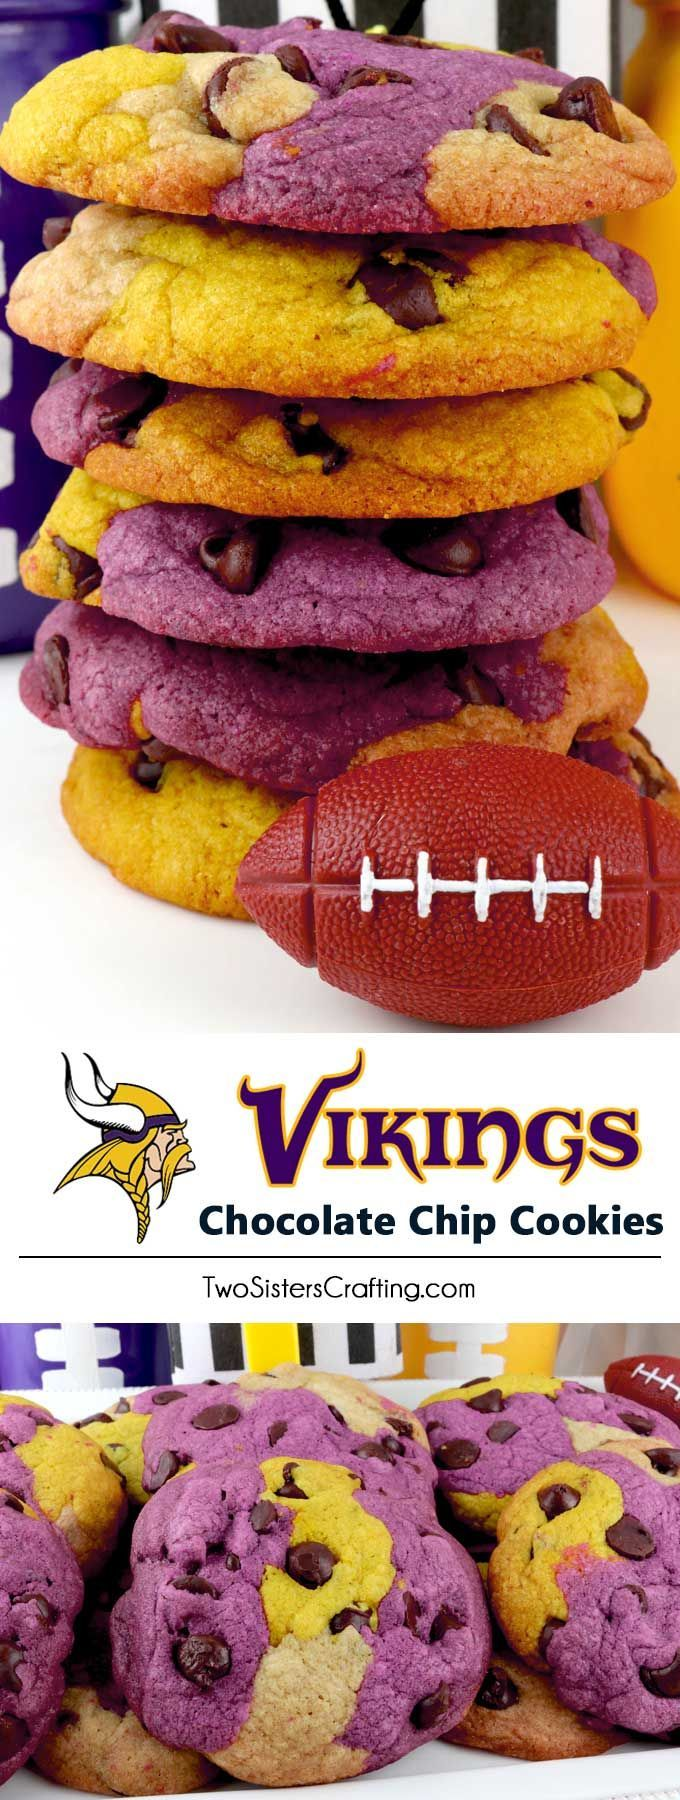 Minnesota Vikings Chocolate Chip Cookies #footballfood